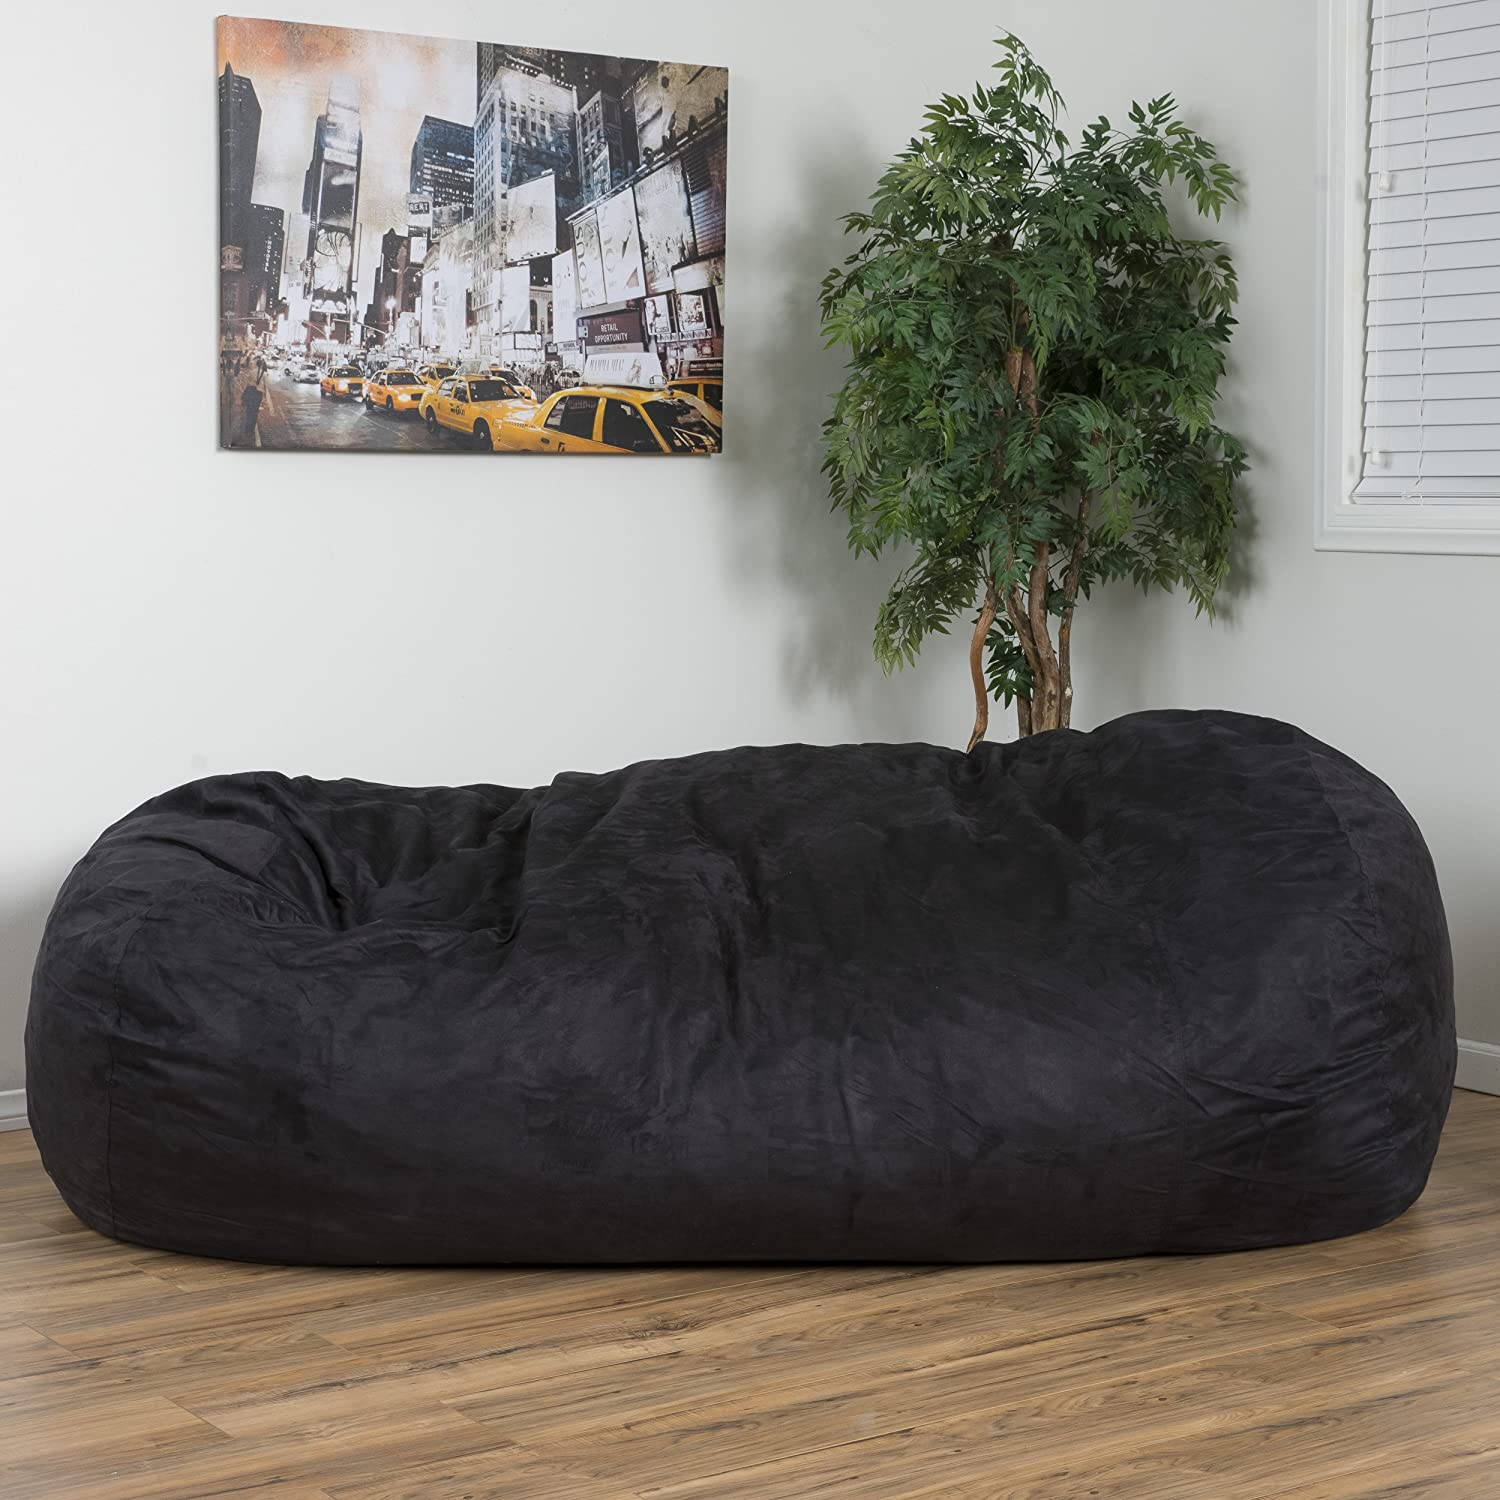 Best Bean Bag Reviews 20